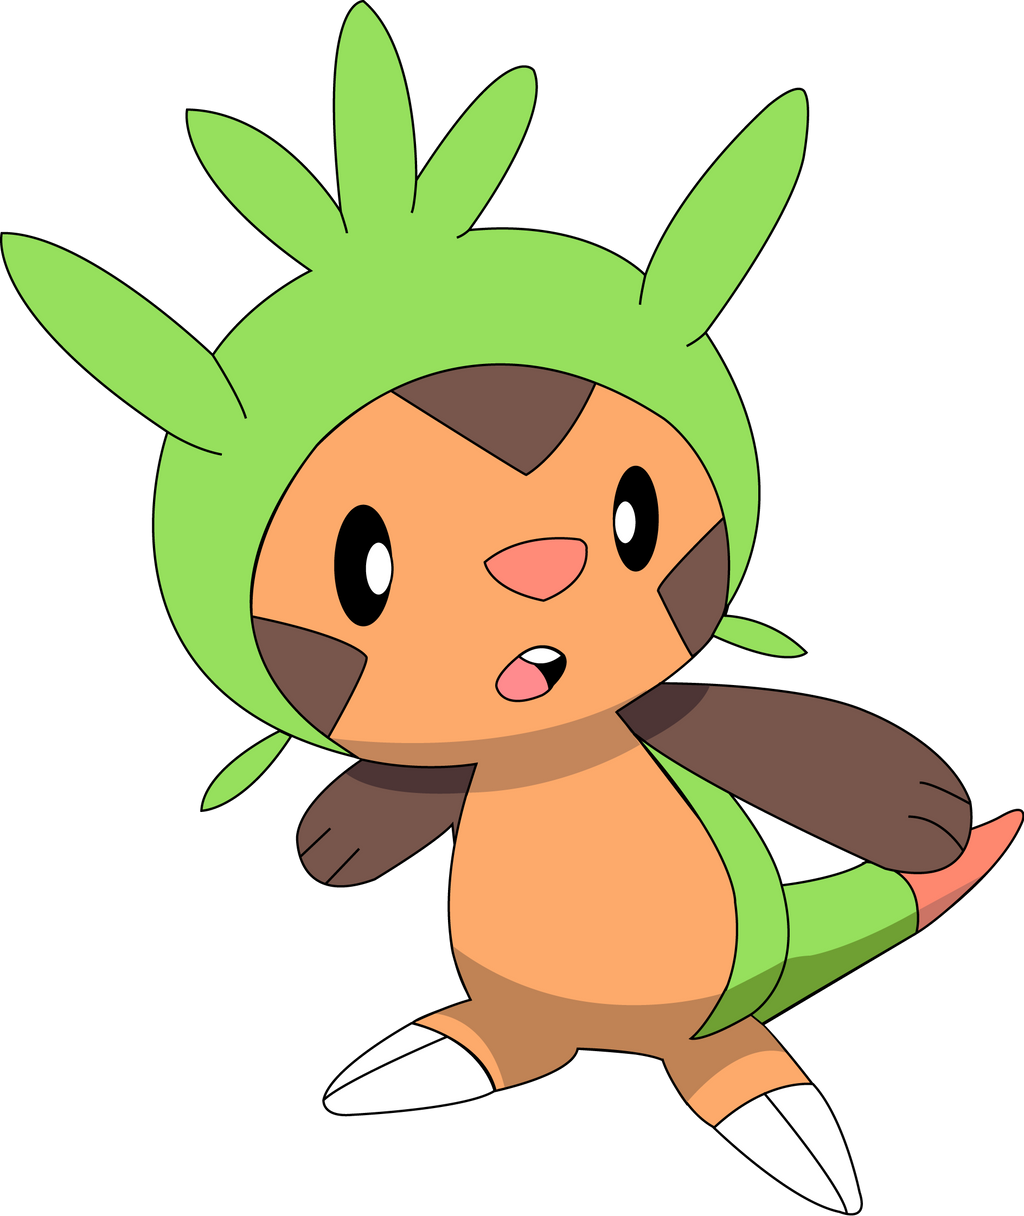 Pokemon X And Y Chespin Evolution Chespin Images | Pokem...